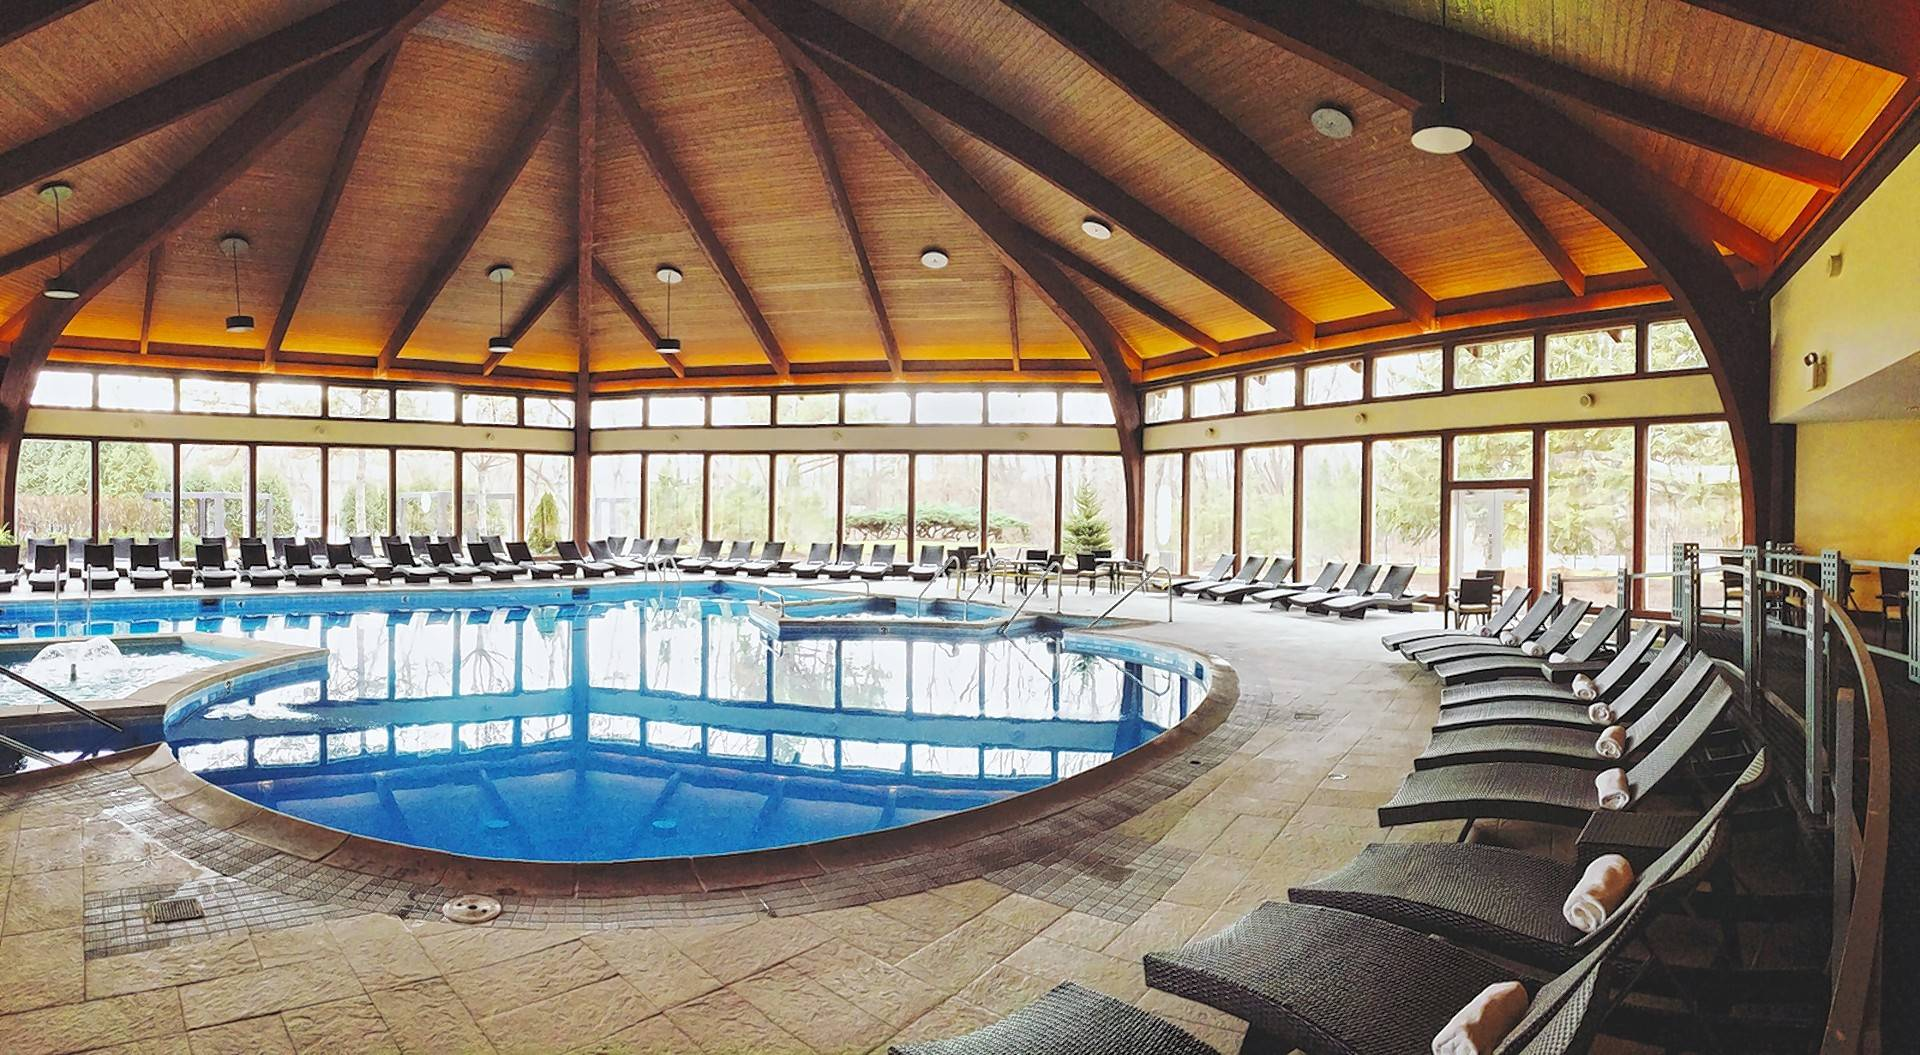 See for yourself why Avani Spa at The Abbey Resort on Geneva Lake has been named one of the Top 100 Spas of 2016.